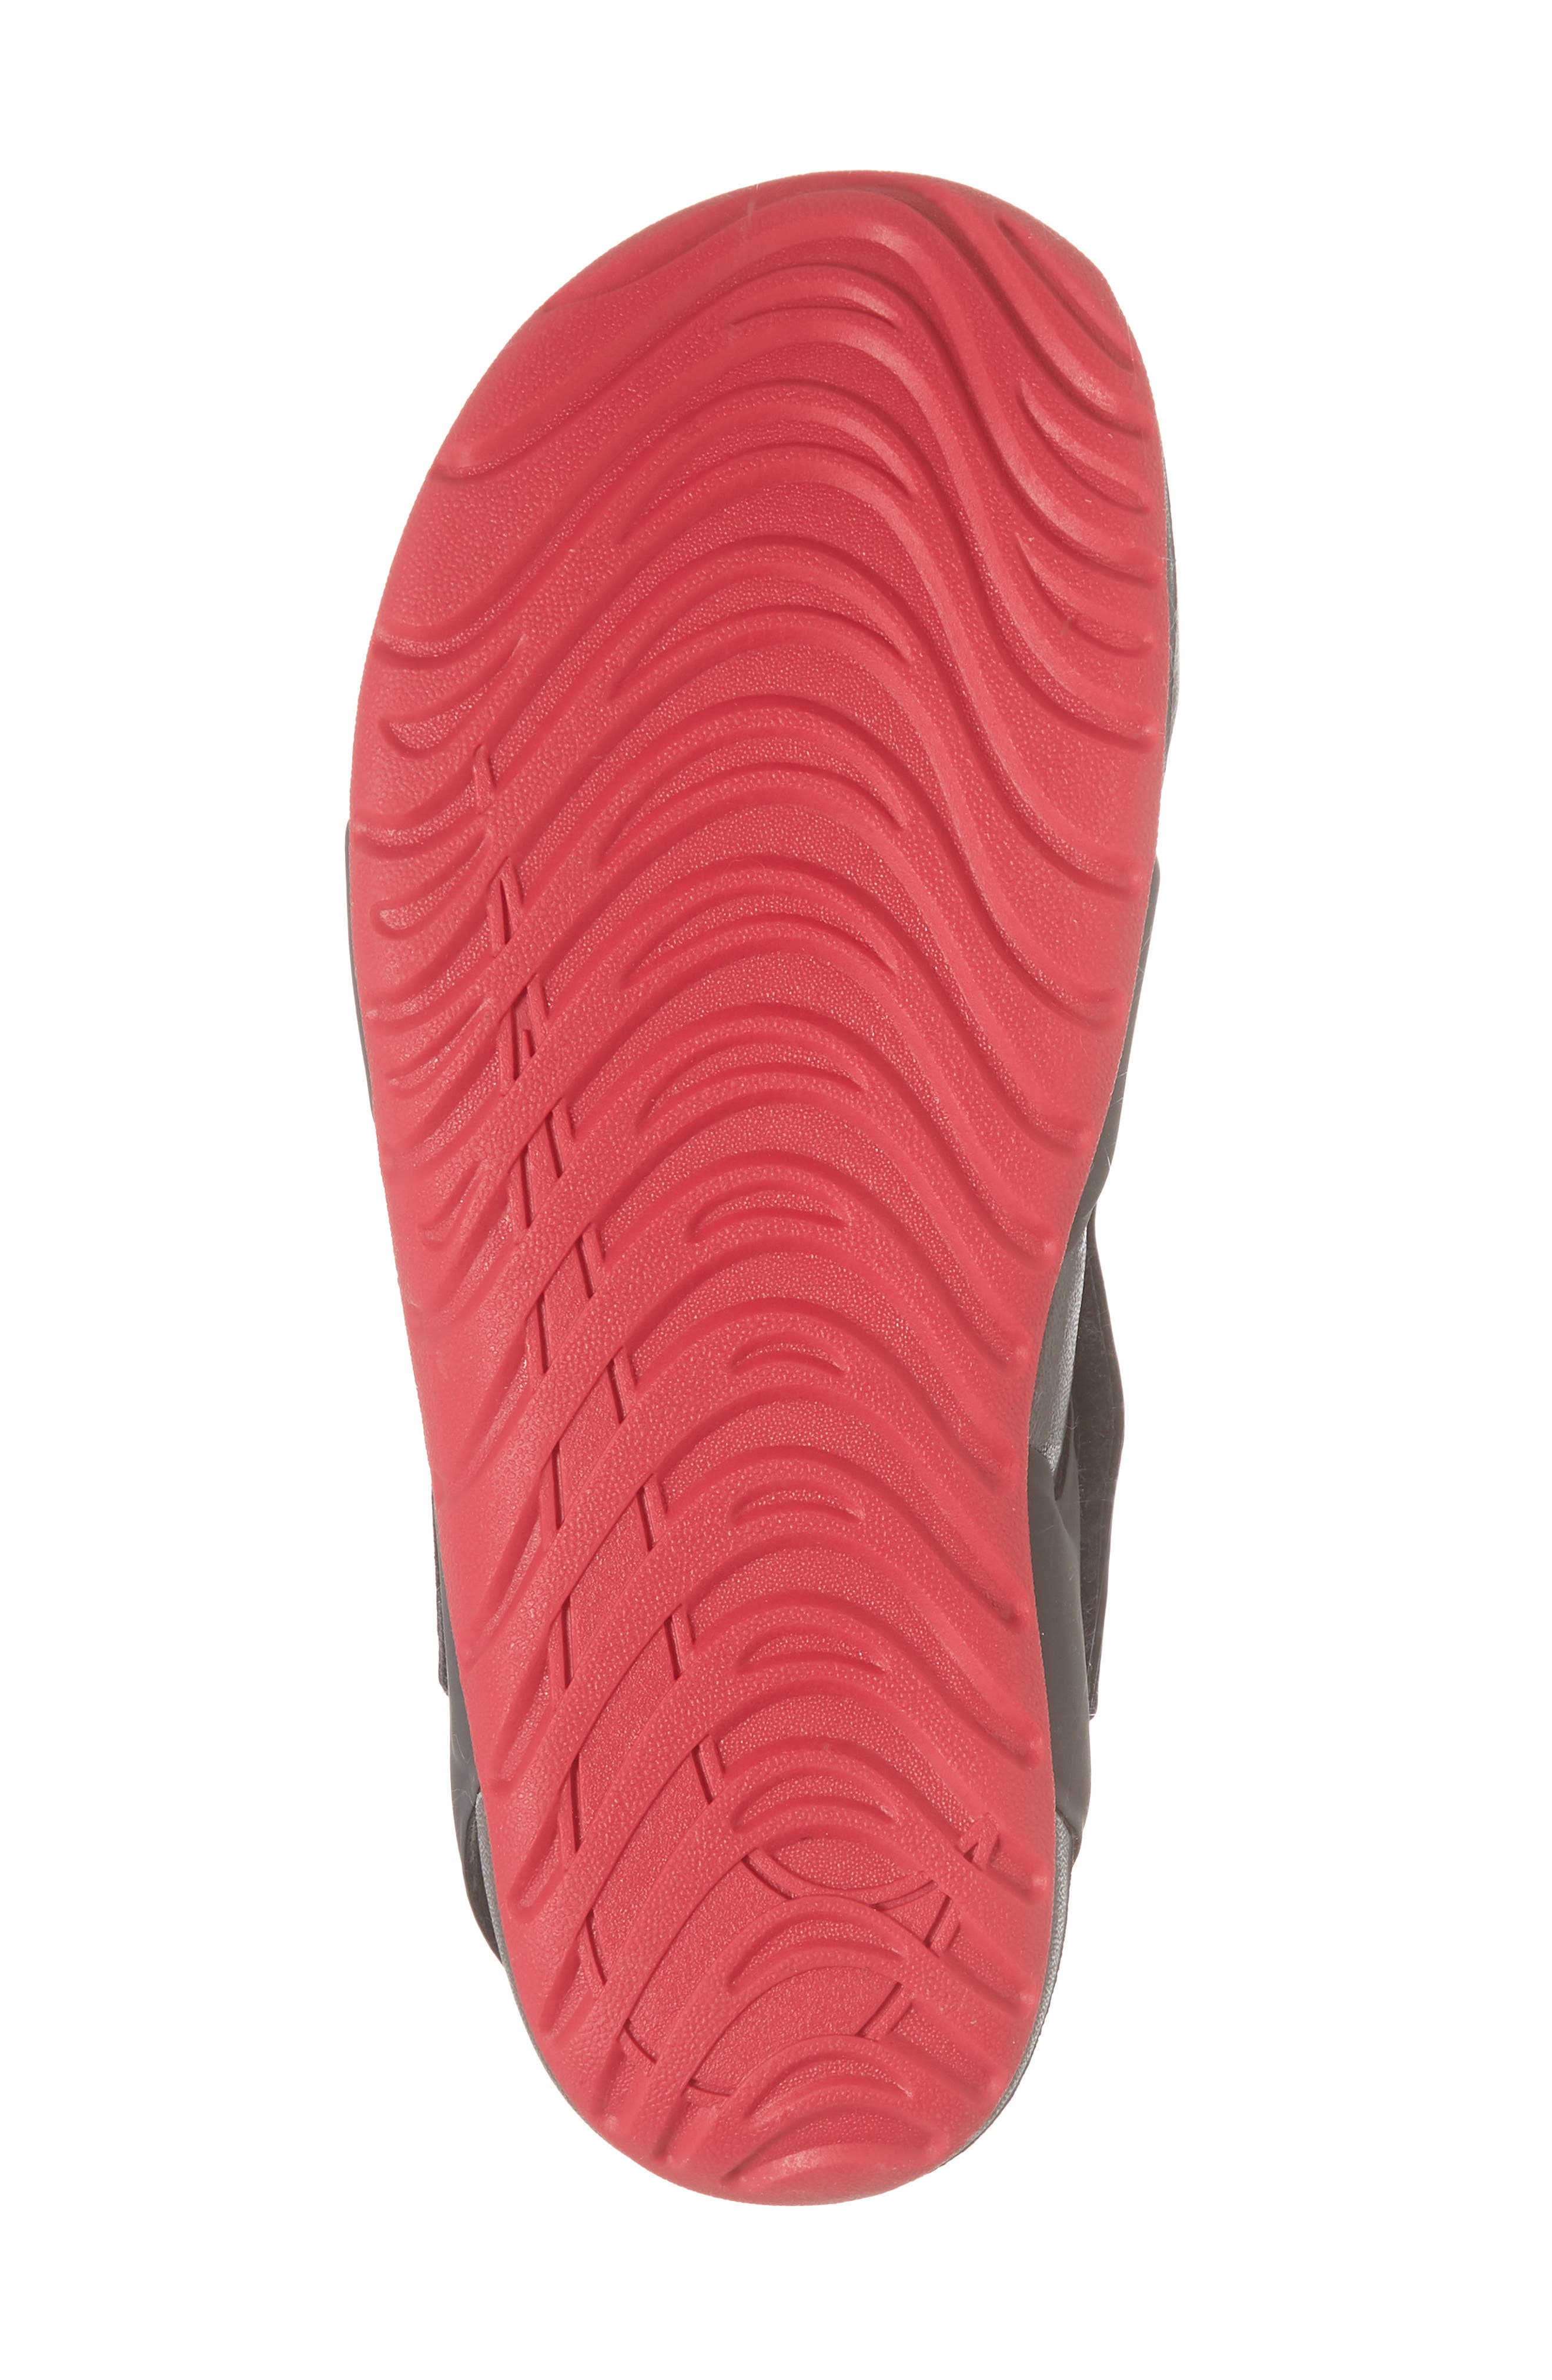 Sunray Protect 2 Sandal,                             Alternate thumbnail 6, color,                             Anthracite/ Rush Pink